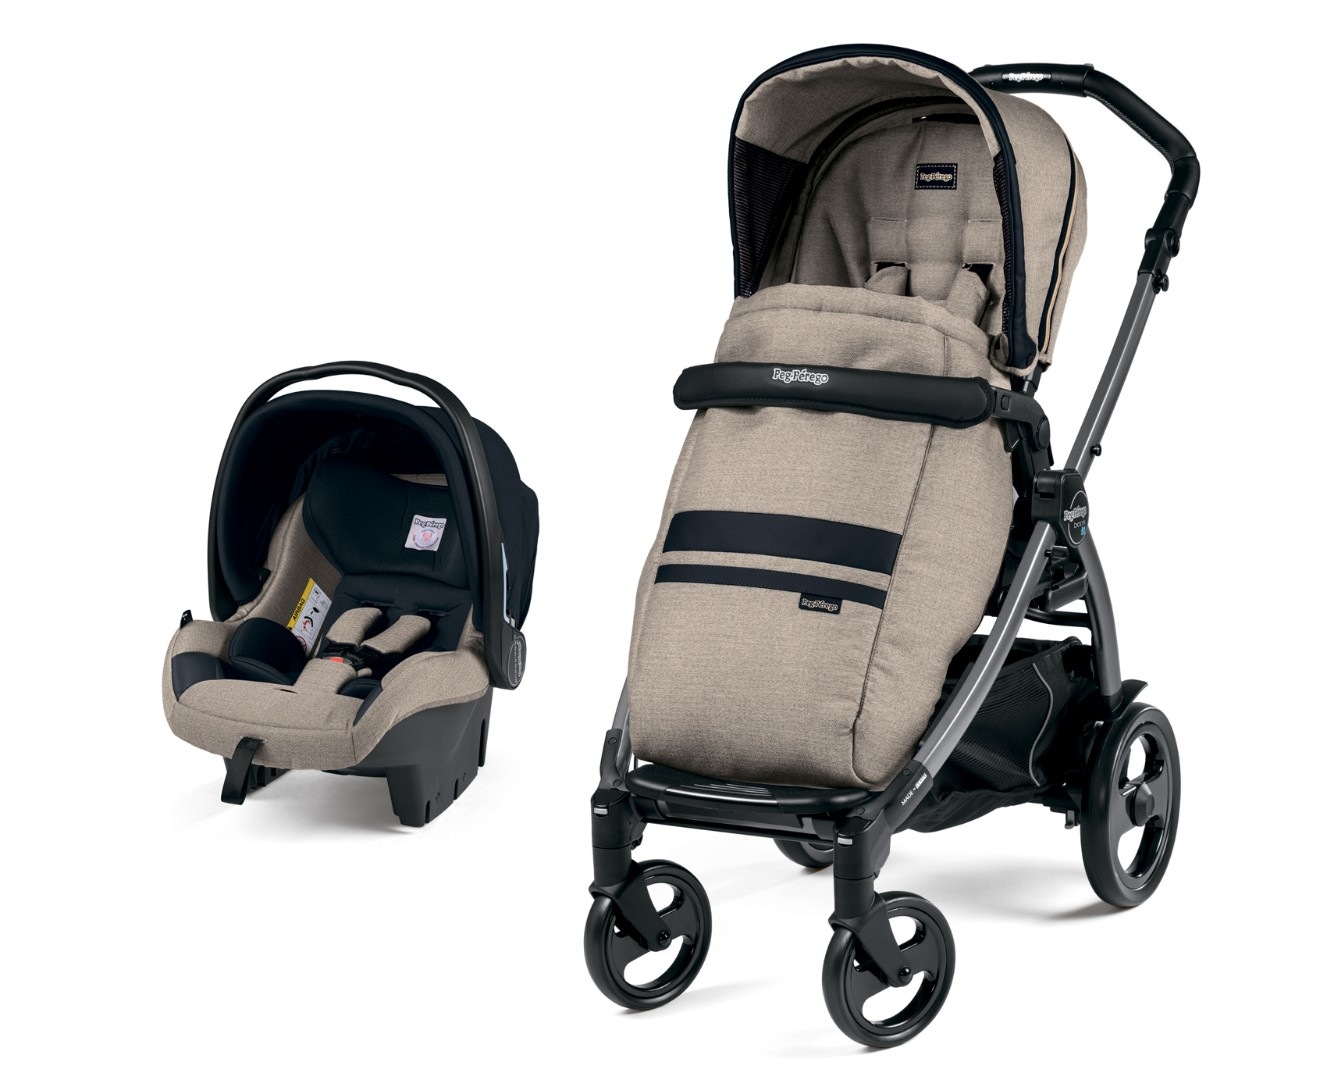 Коляска 2 в 1 Peg-Perego Book 51 SL Travel System Luxe Ecru